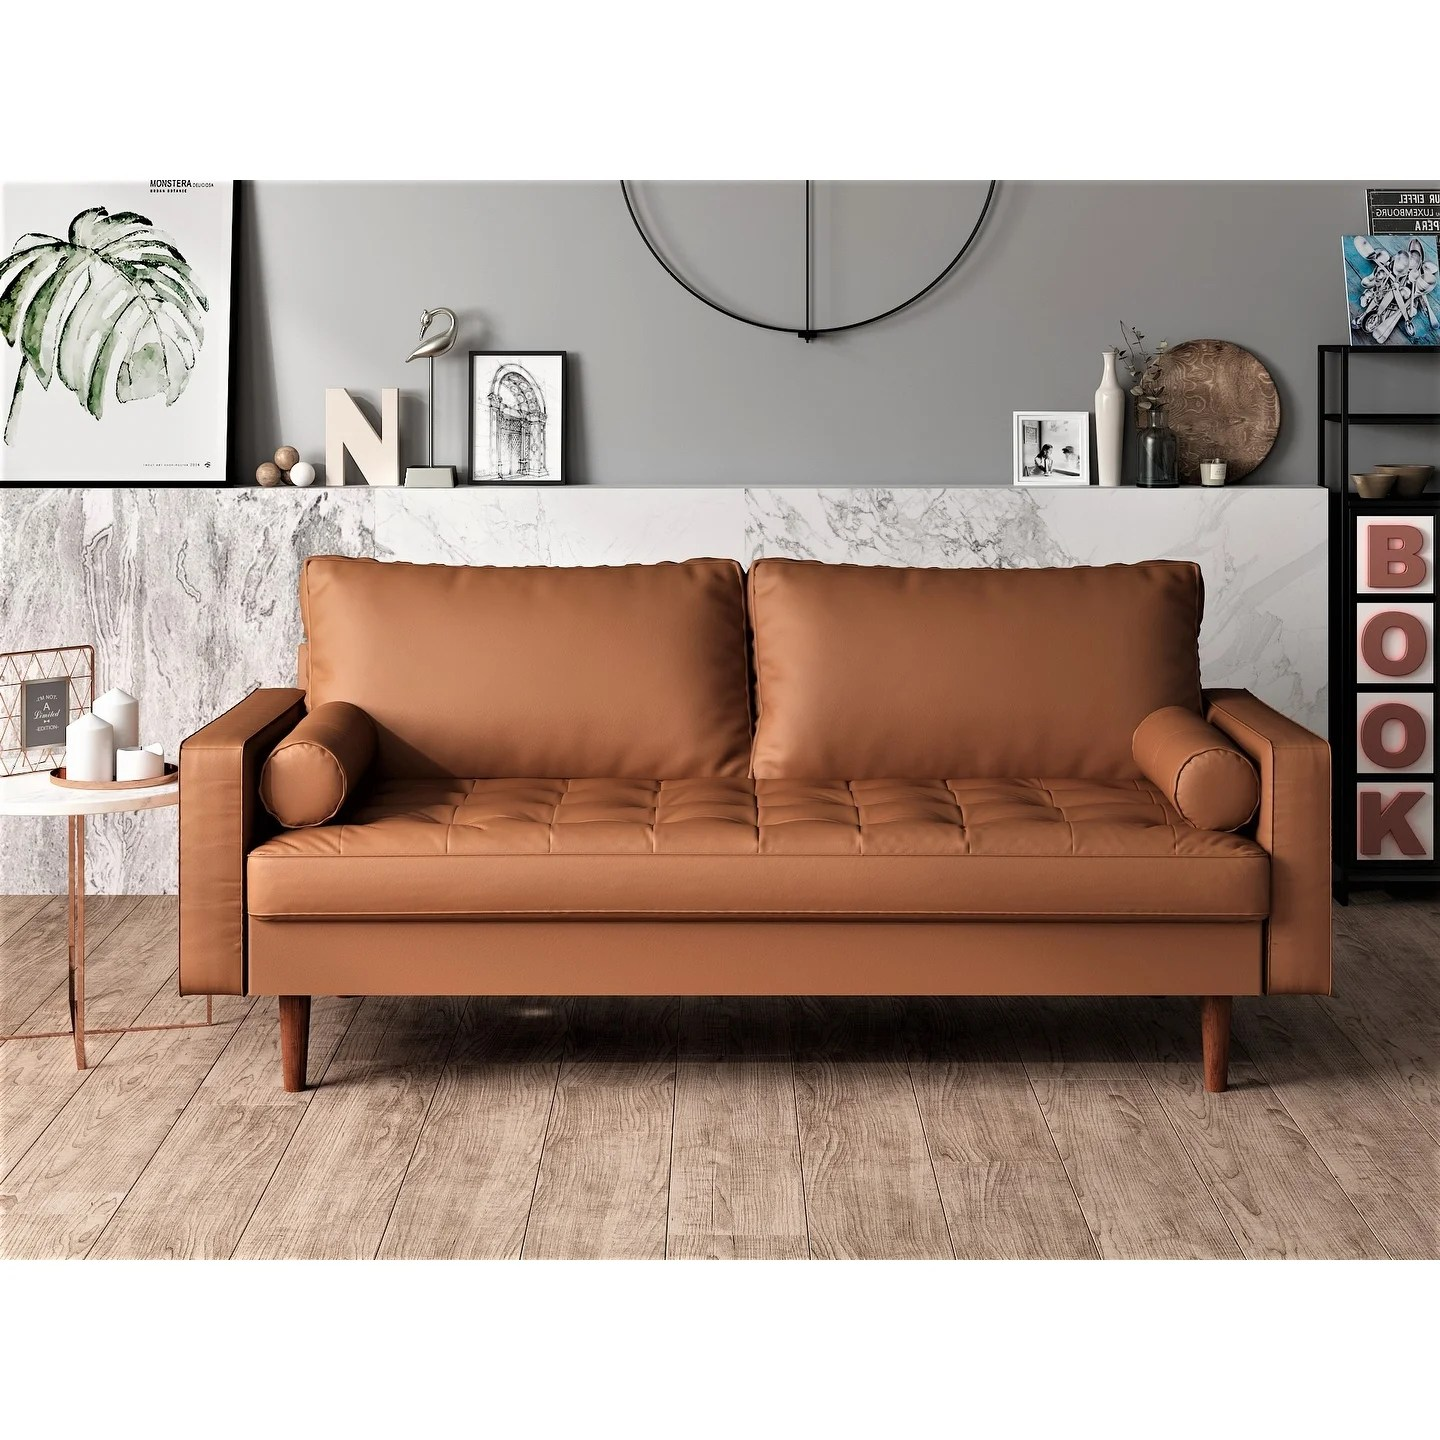 Us Pride Faux Leather Mid Century Modern Sofa On Sale Overstock 25994629